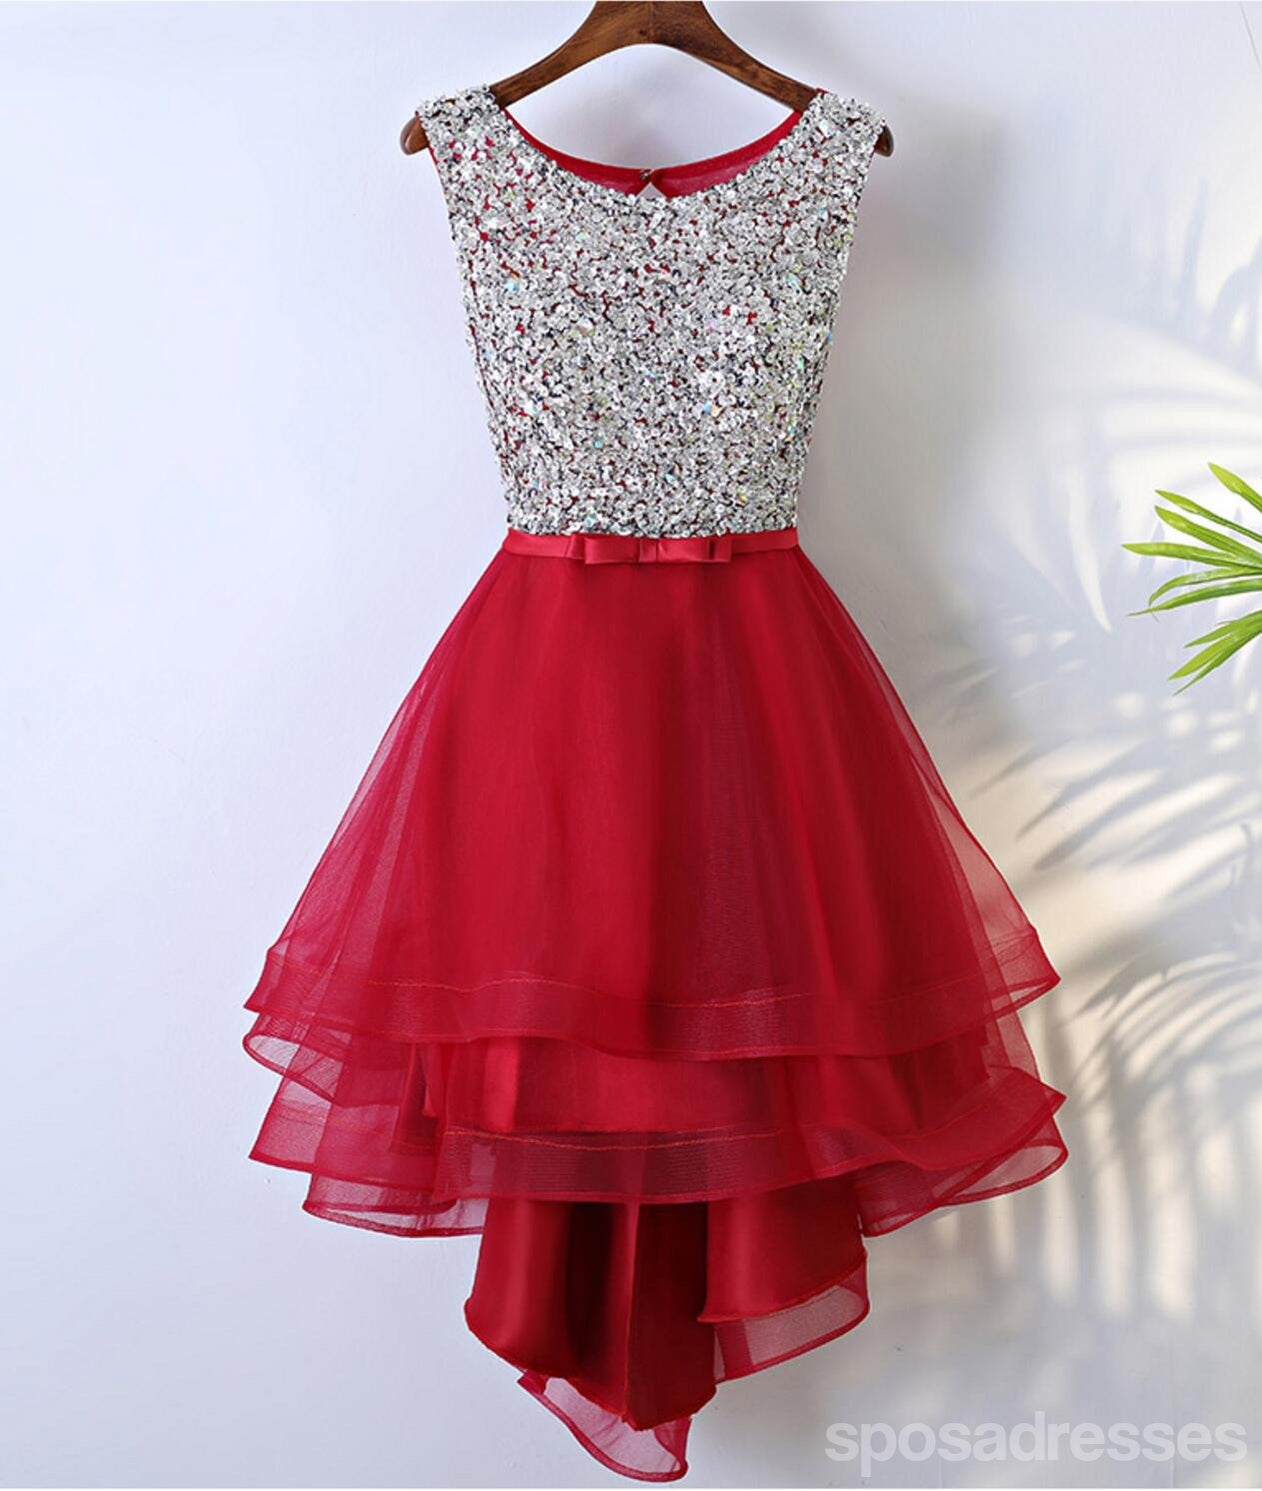 Rhinestone sequin high low open back red homecoming prom dresses rhinestone sequin high low open back red homecoming prom dresses affordable corset back short party ombrellifo Choice Image